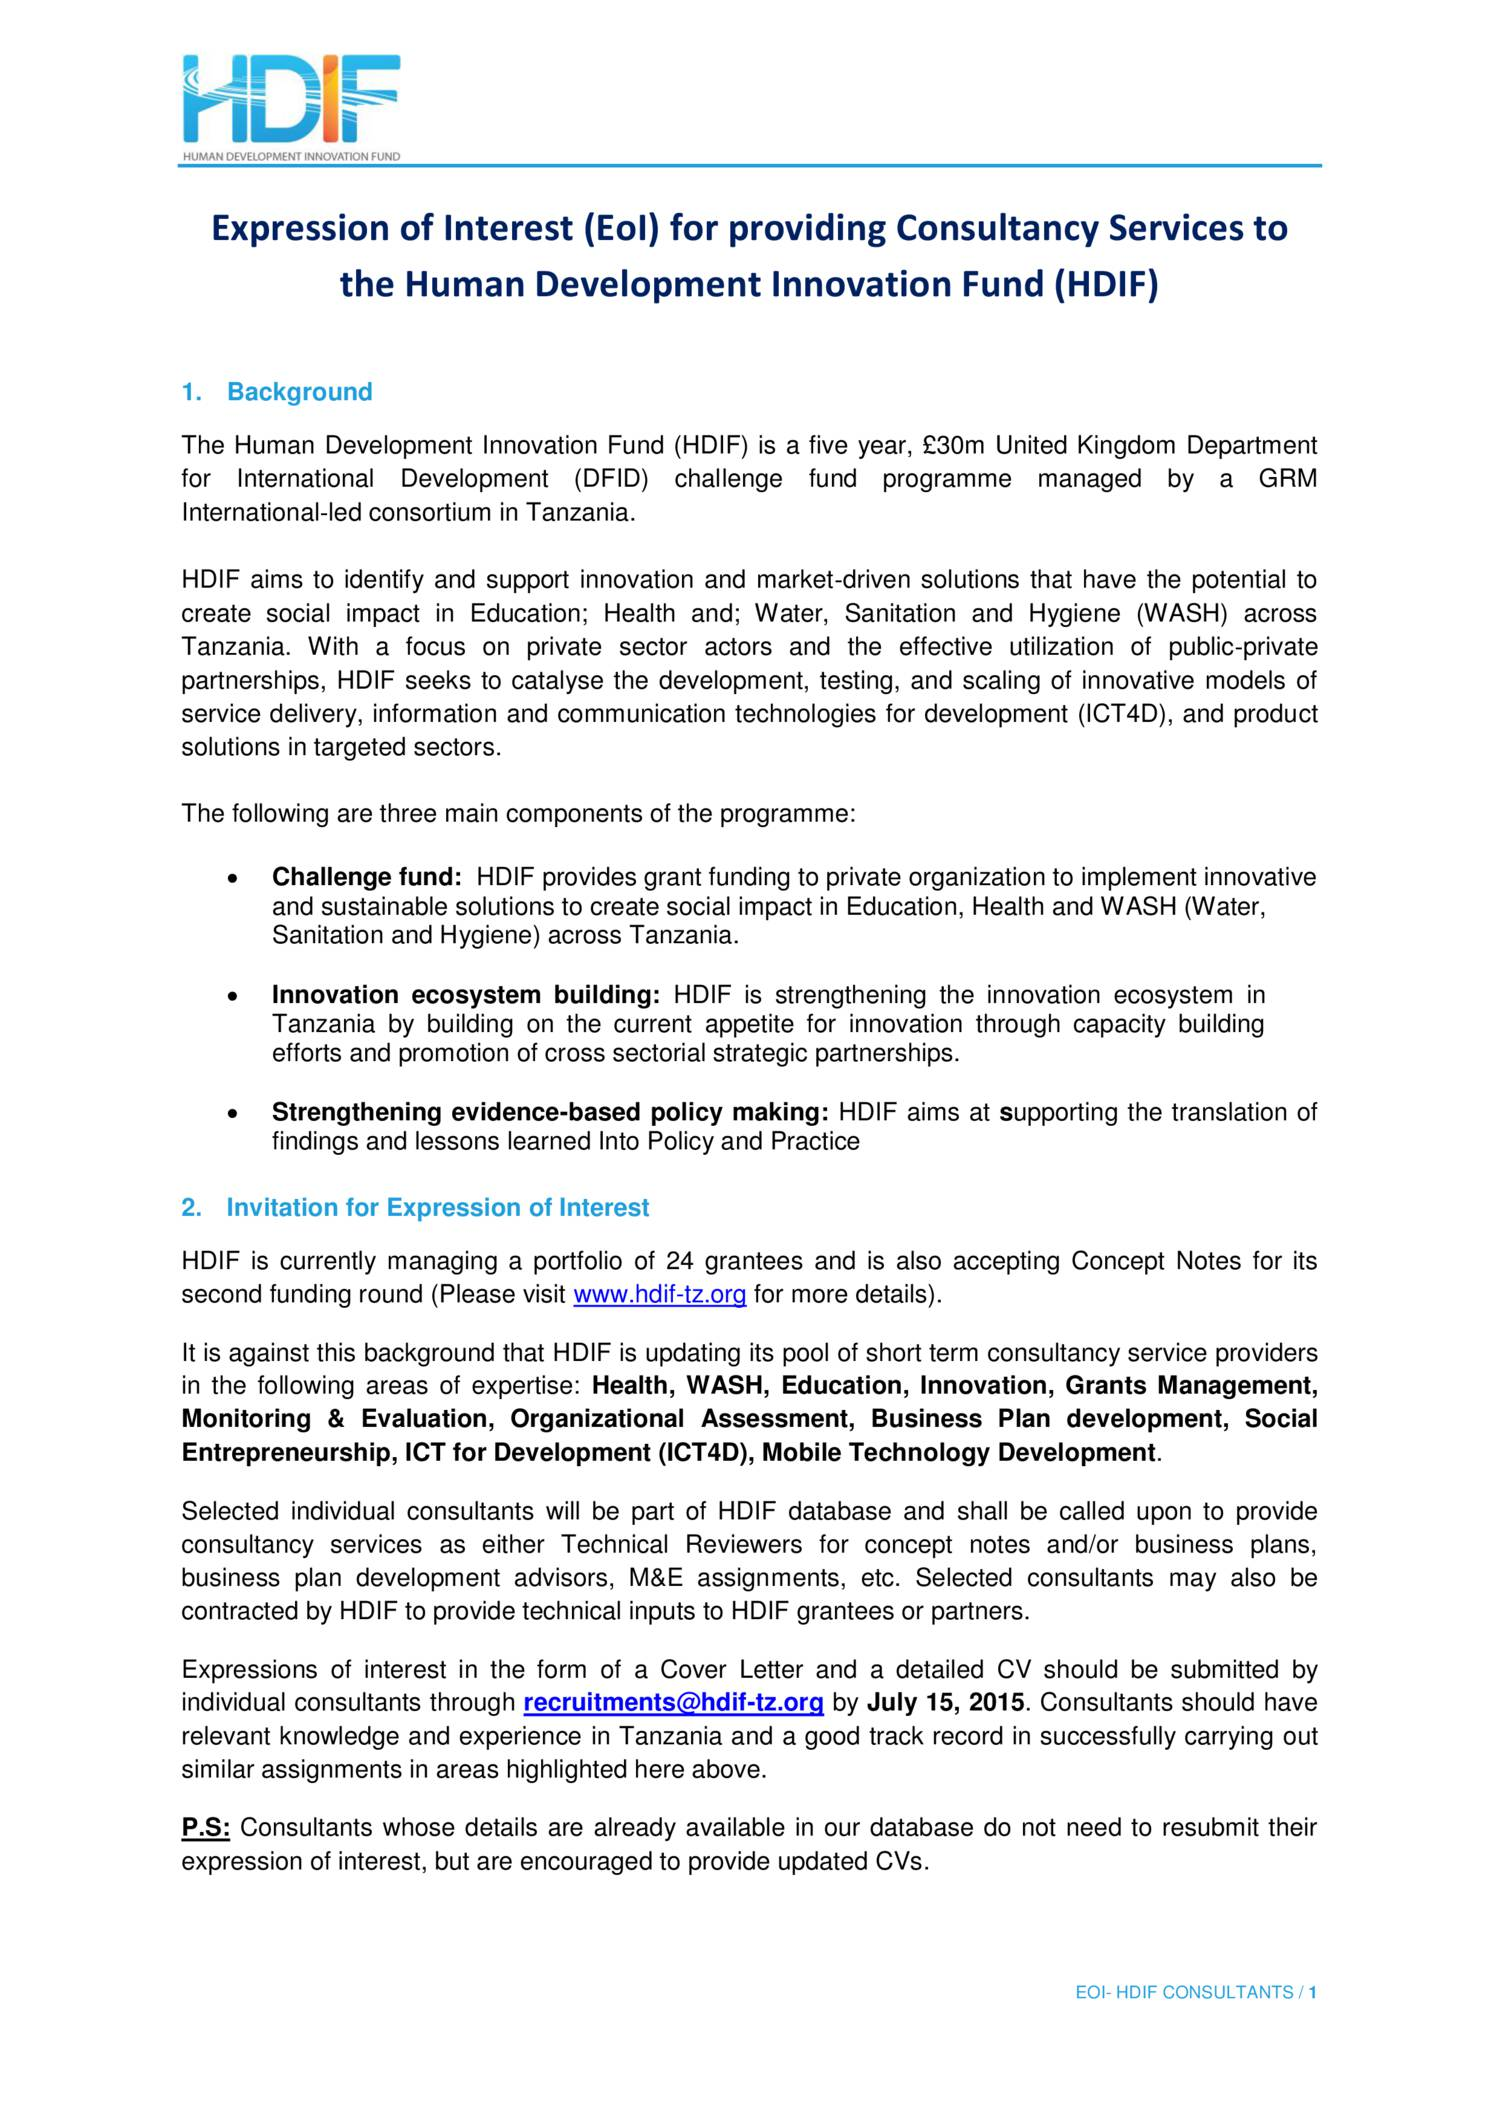 Request for Expressions of Interest ( Consulting Services)